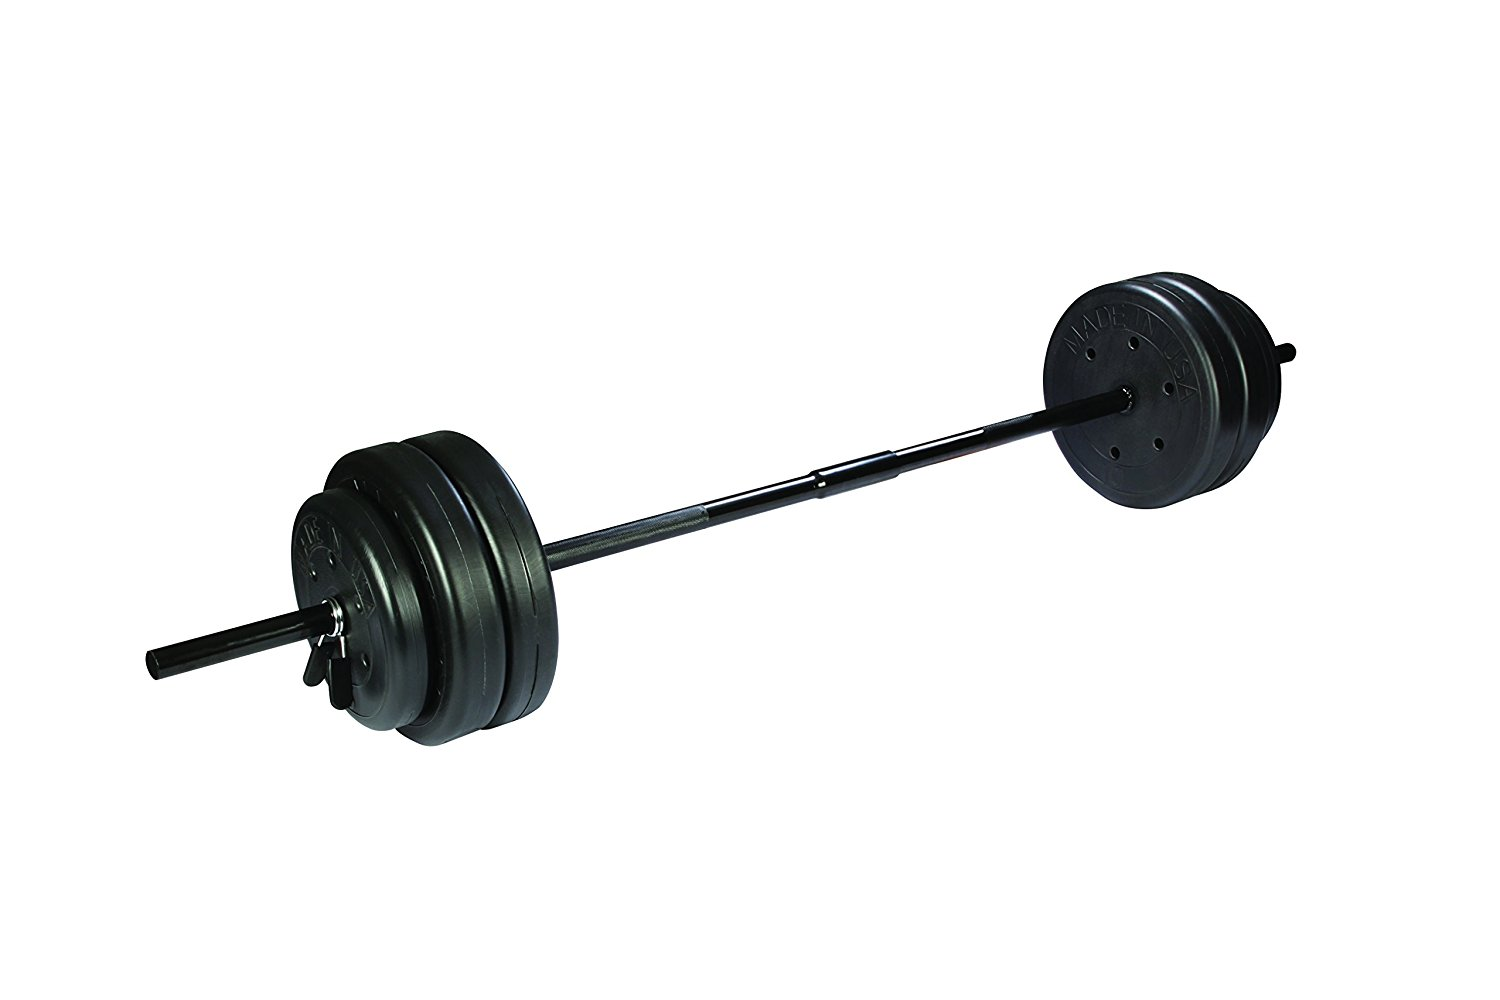 1500x1000 Us Weight Duracast Barbell Weight Set, 55 Lb Sports